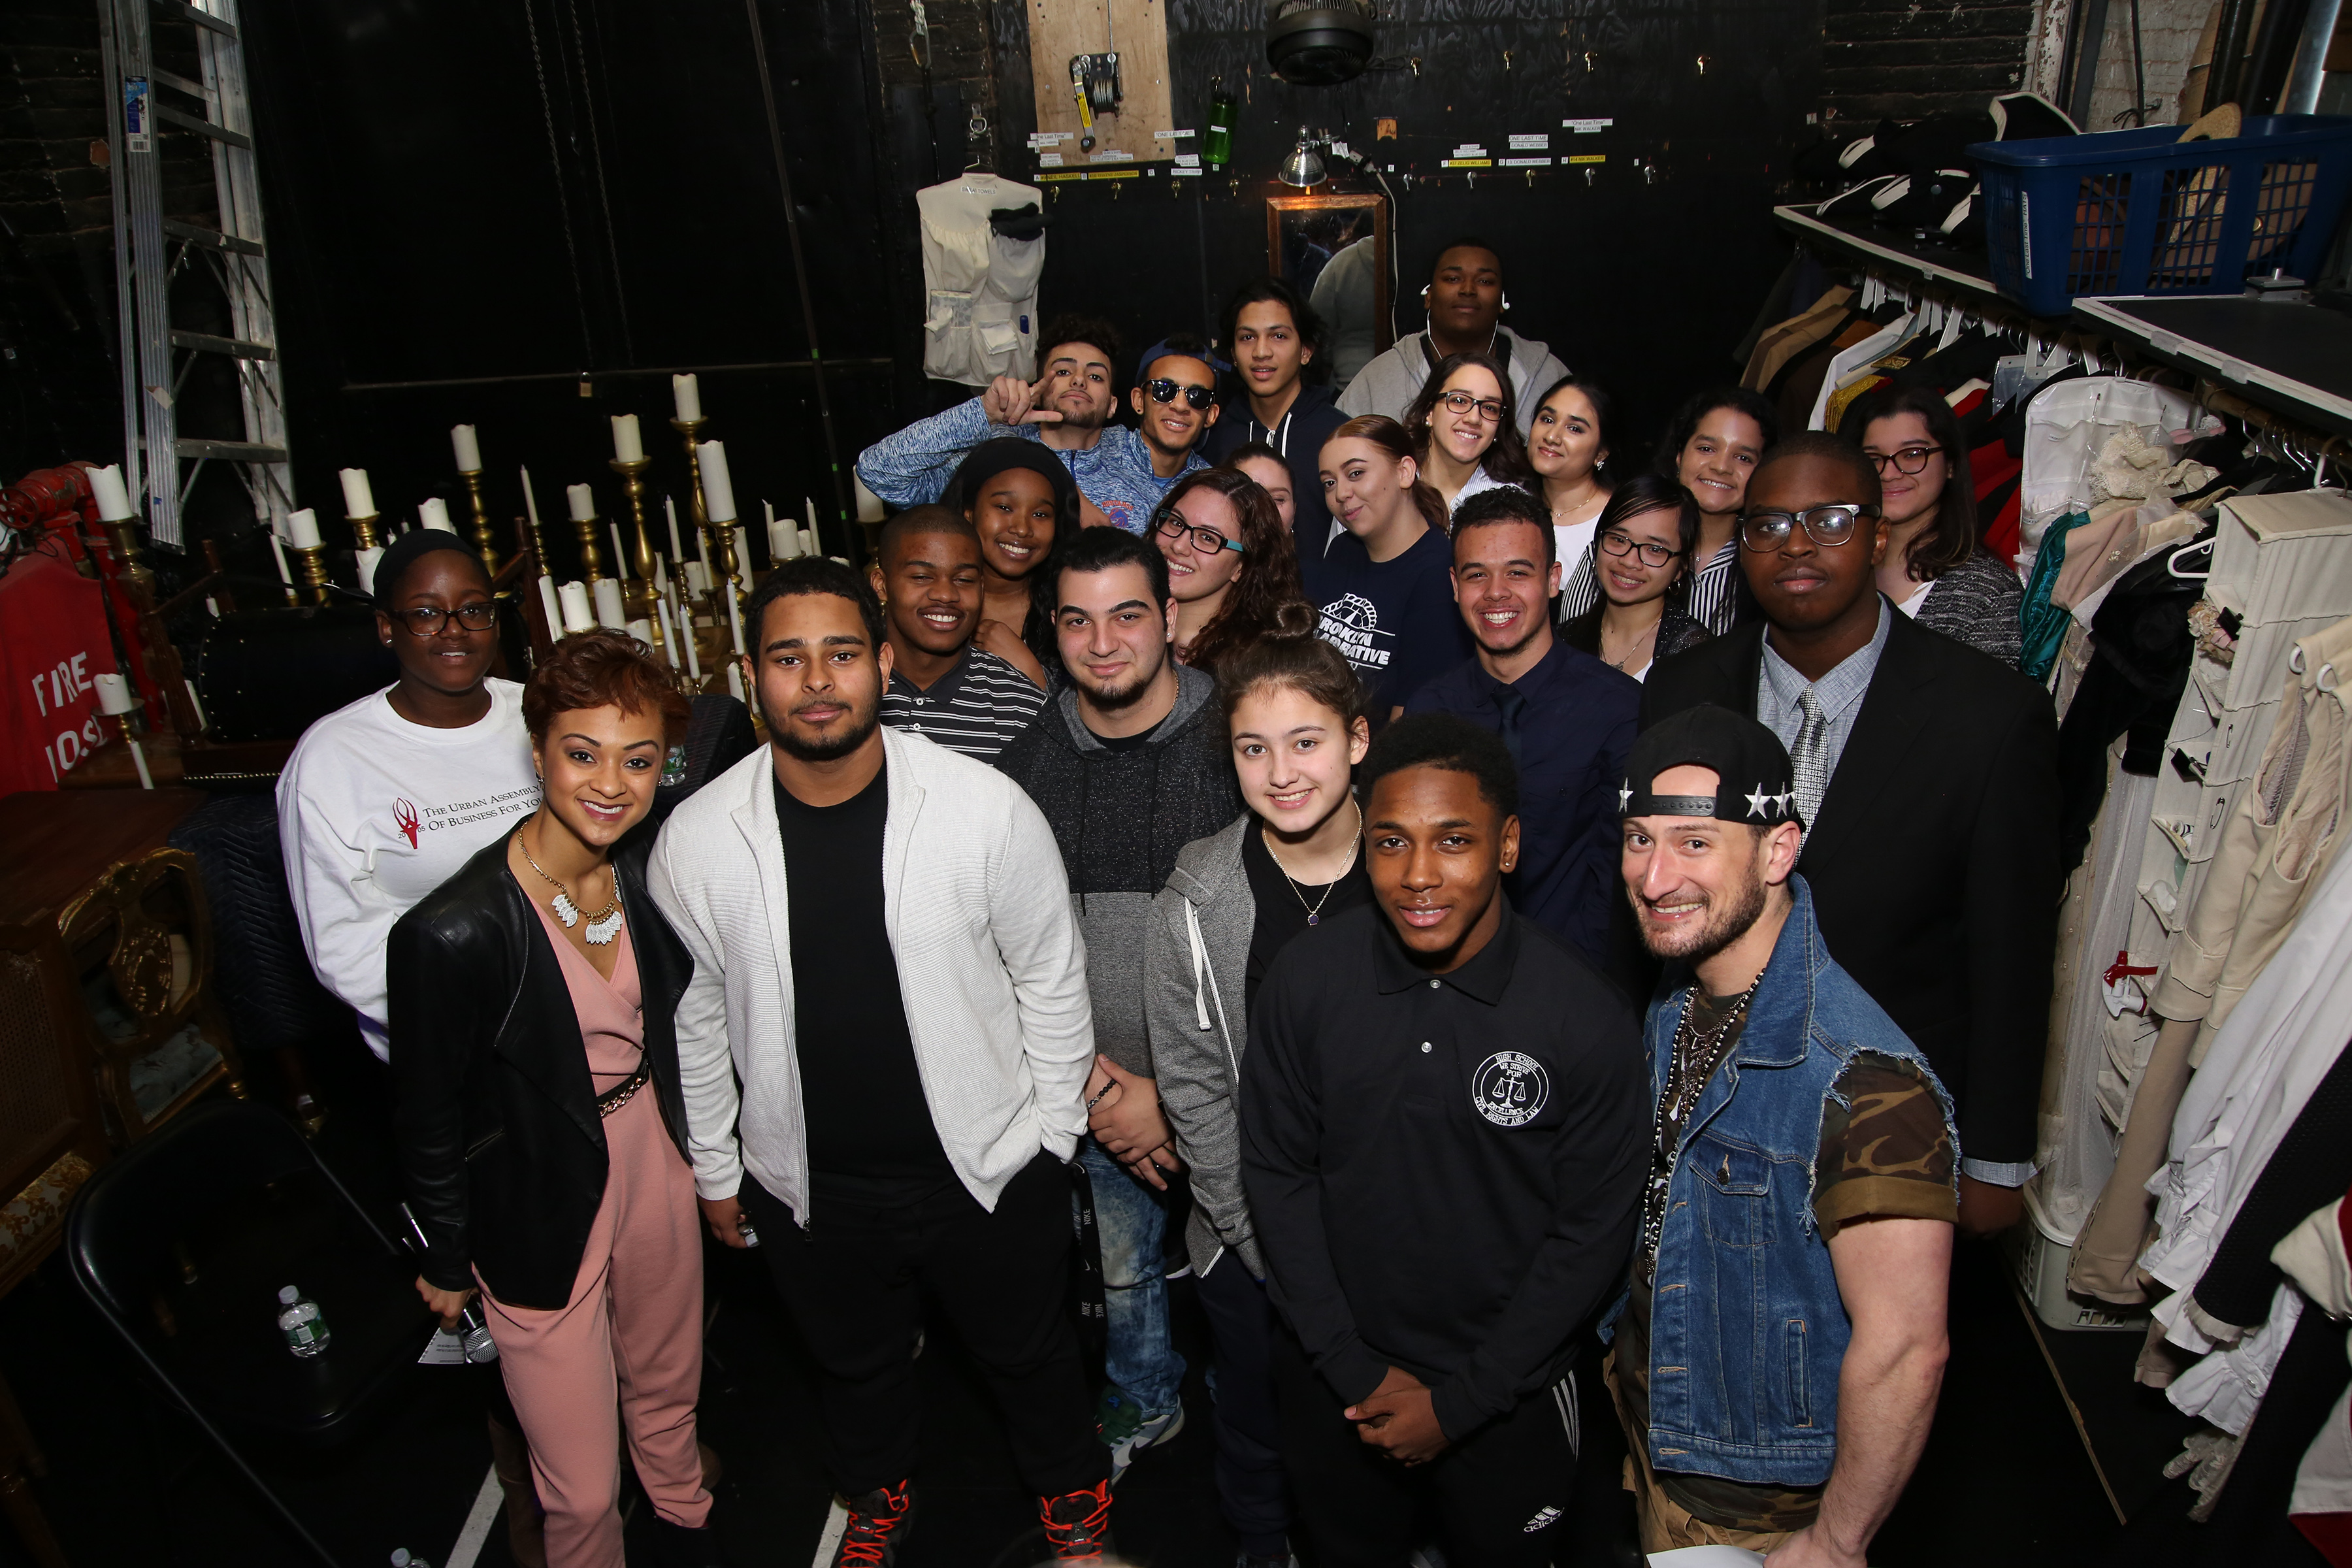 Student performers pose backstage at the Richard Rodgers Theatre, New York